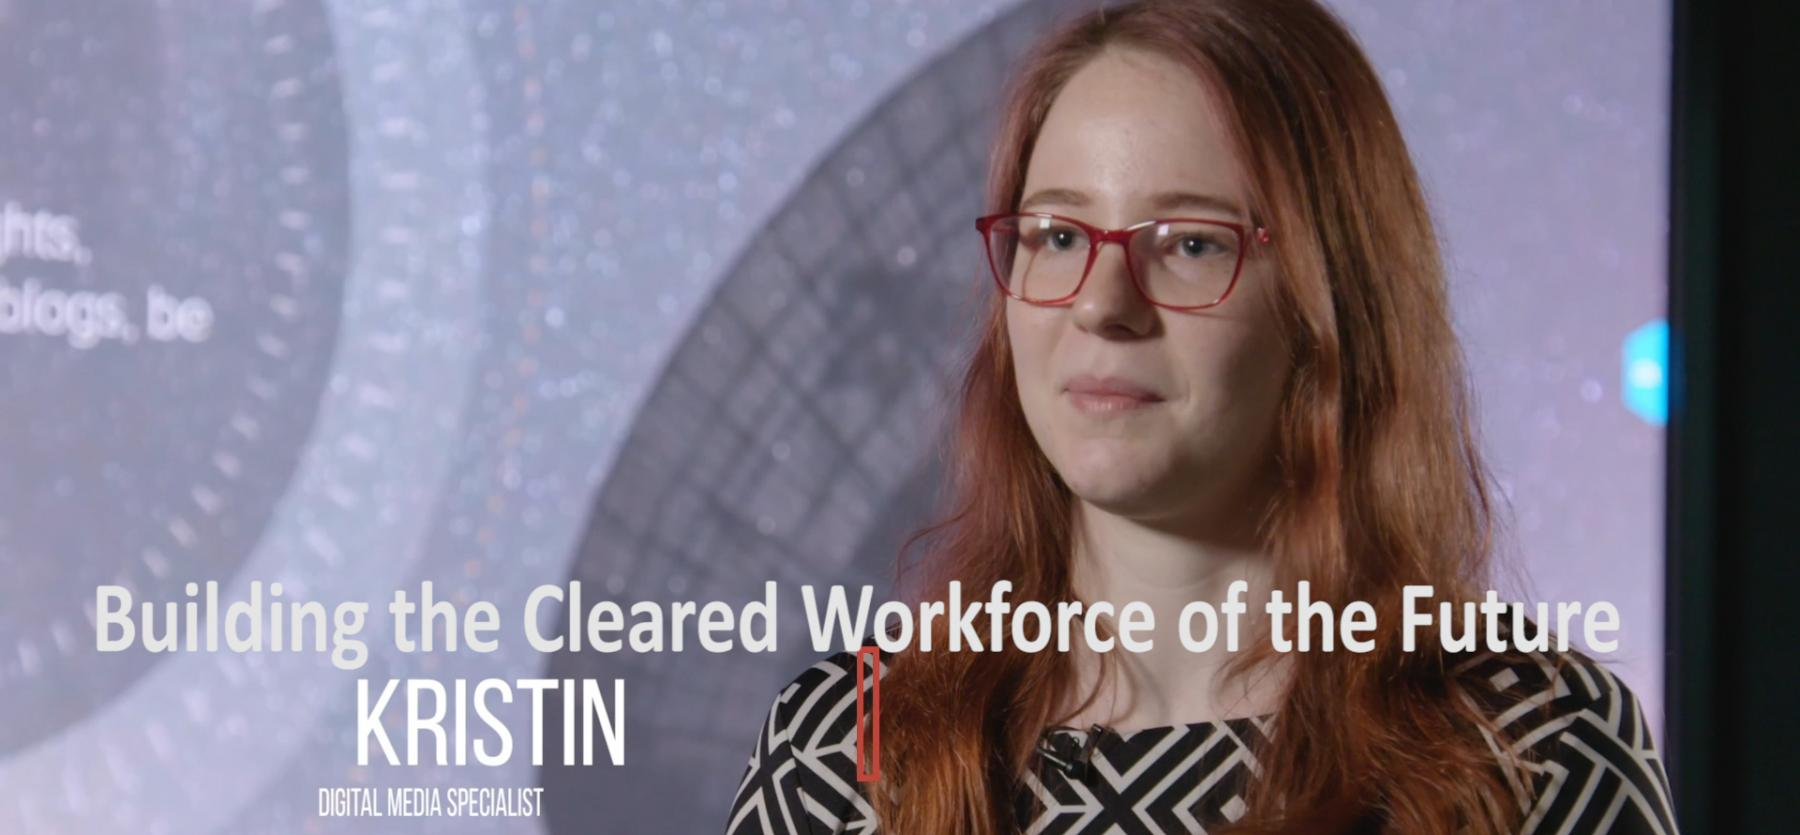 Building the Cleared Workforce of the Future